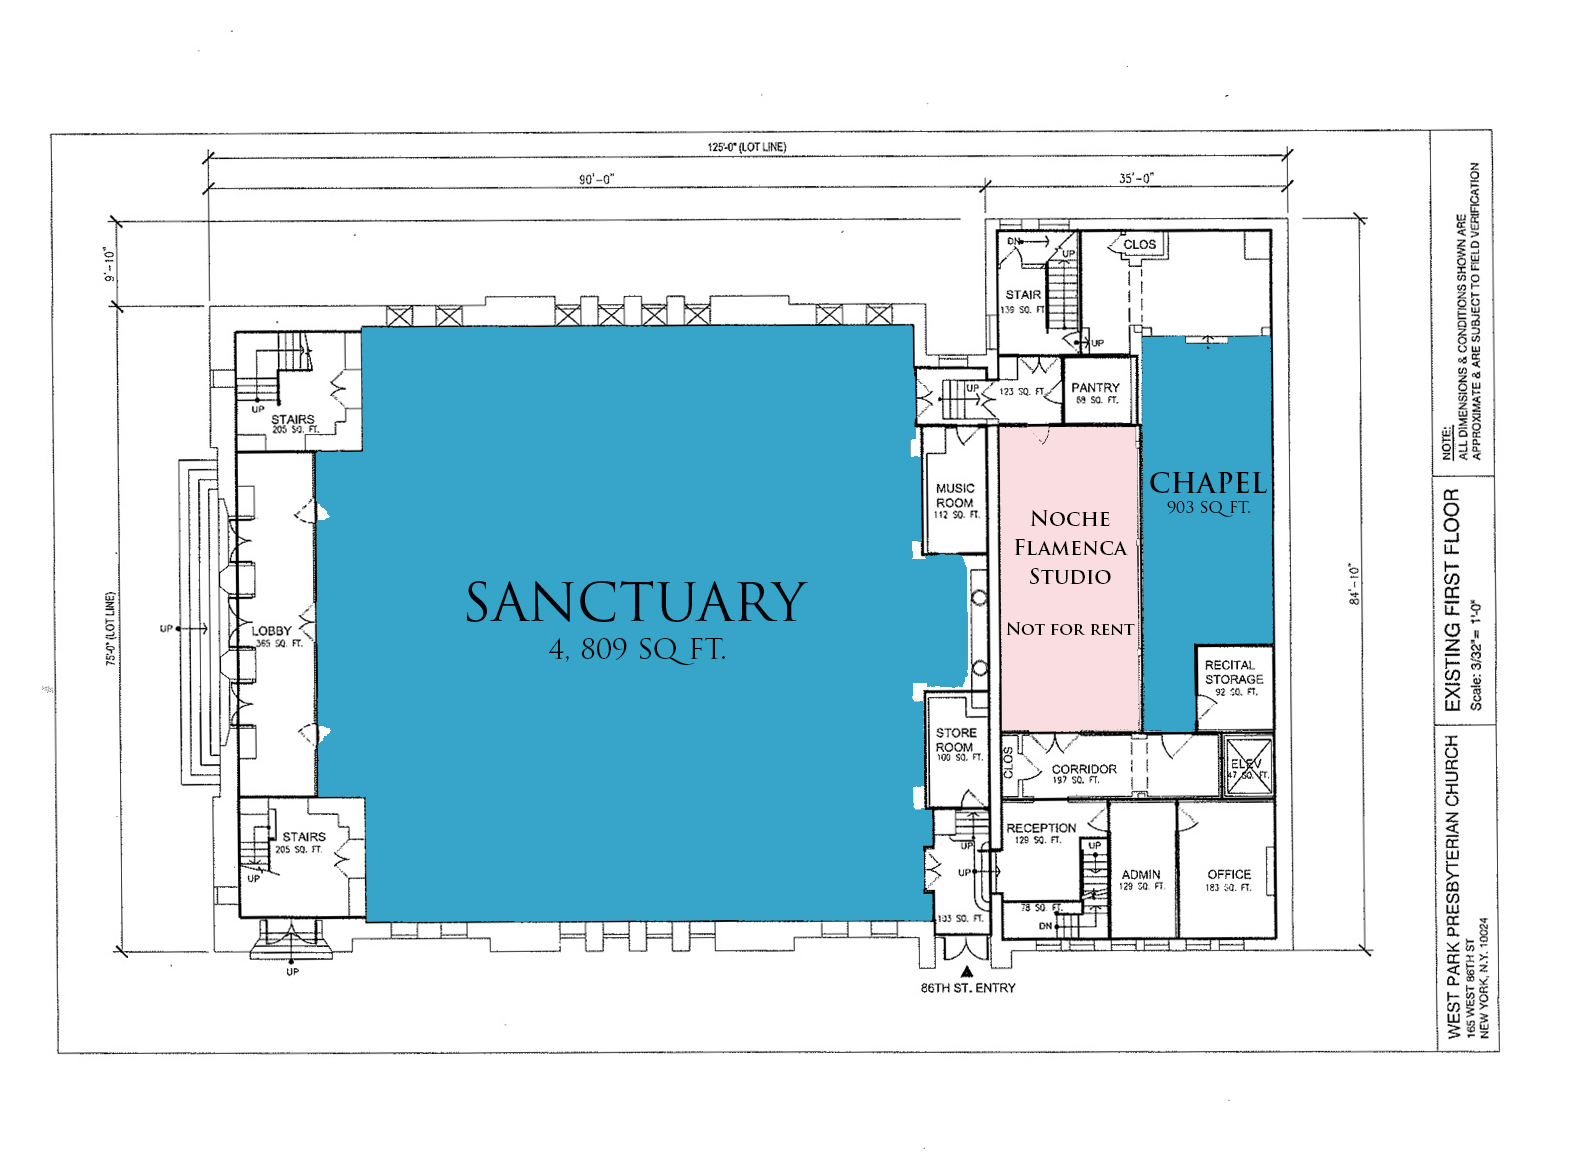 Church gymnasium floor plans joy studio design gallery for Church floor plan designs